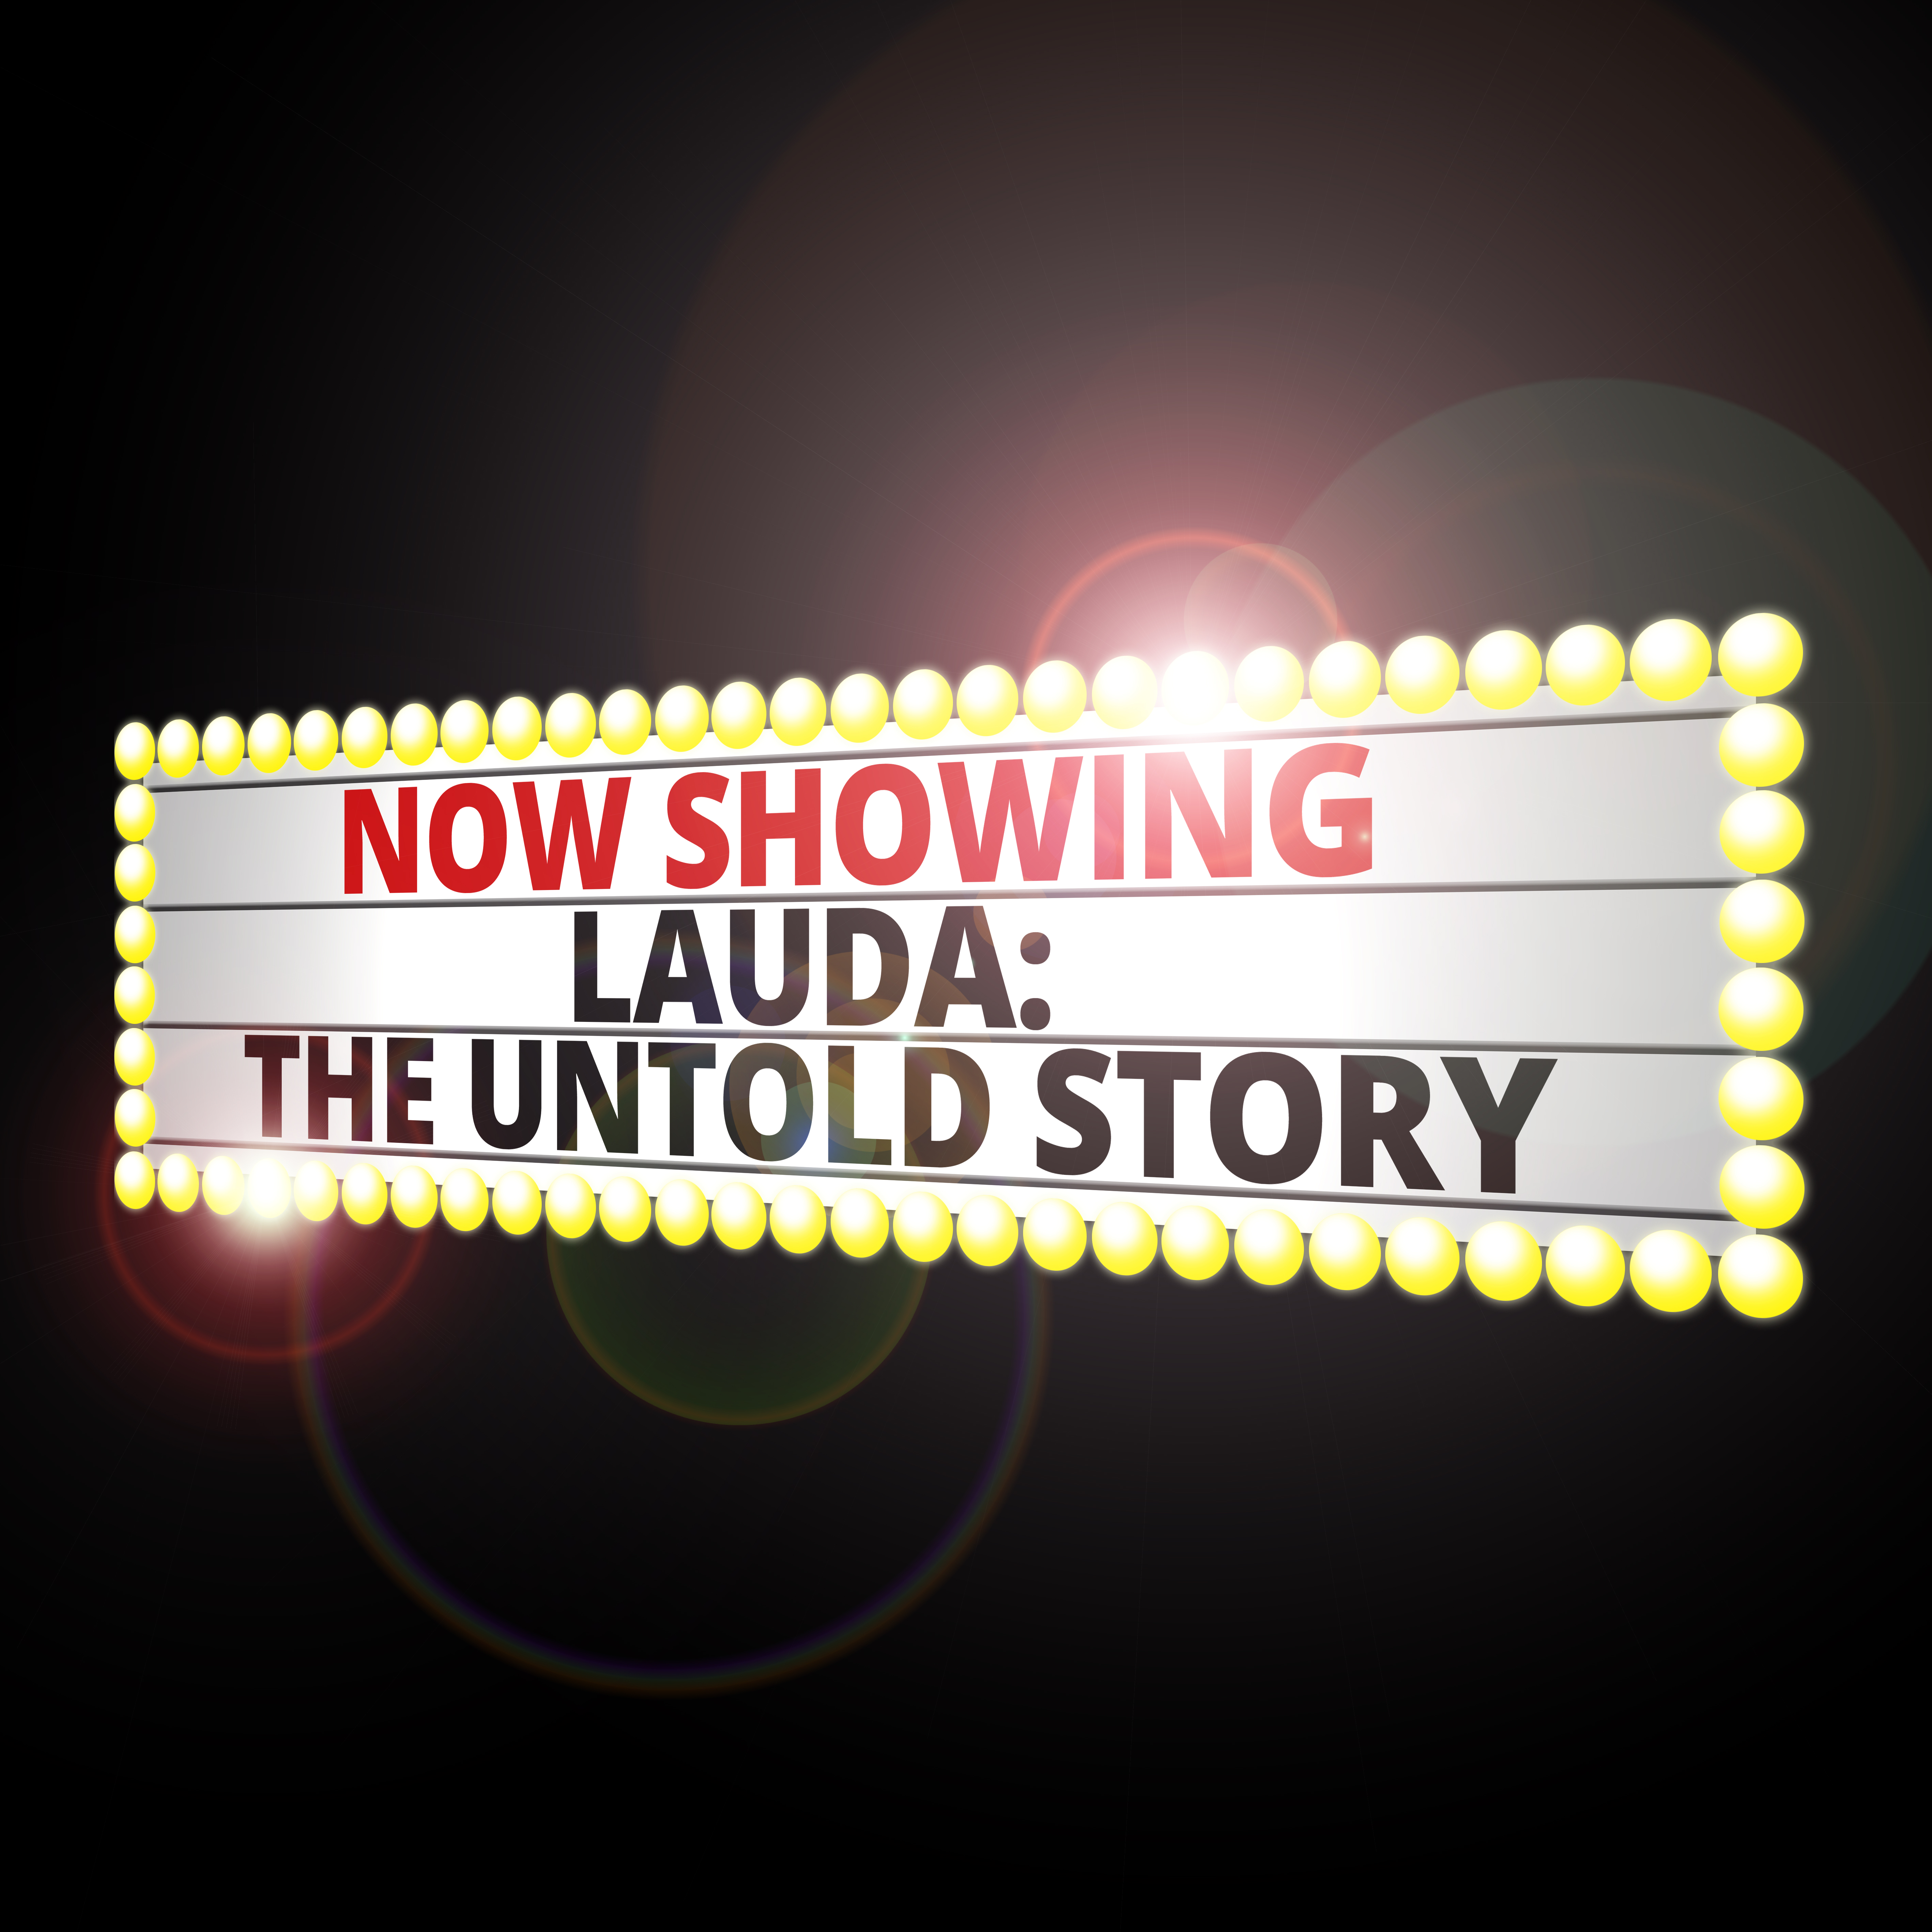 'Lauda: The Untold Story' coming to cinemas near you!